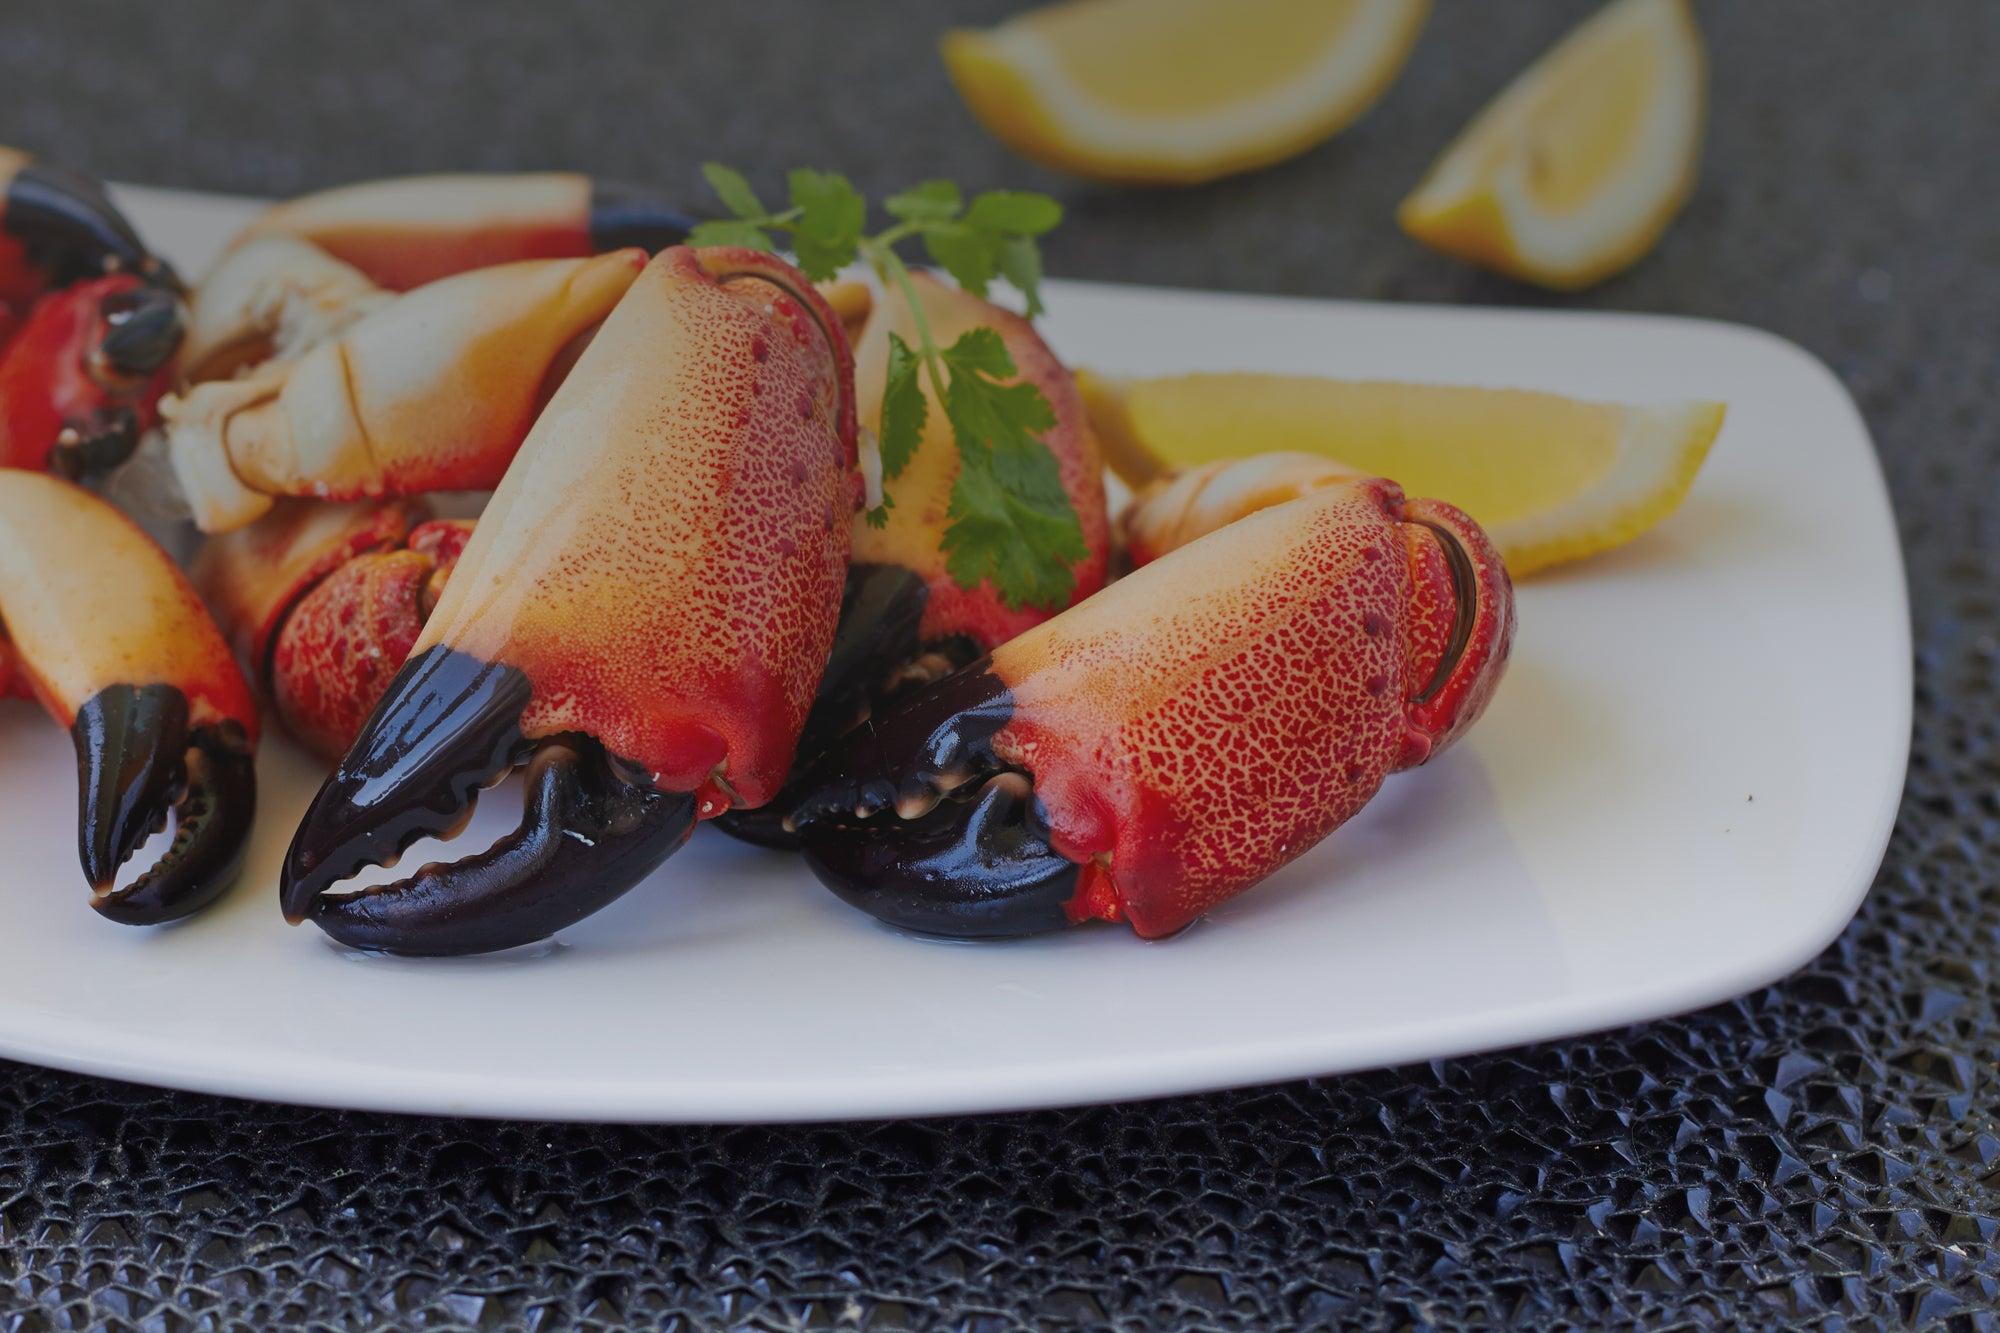 How can you tell if your Florida stone crabs are fresh? Buy from Patas fresh stone crabs delivered to your door anywhere in the US and select international locations